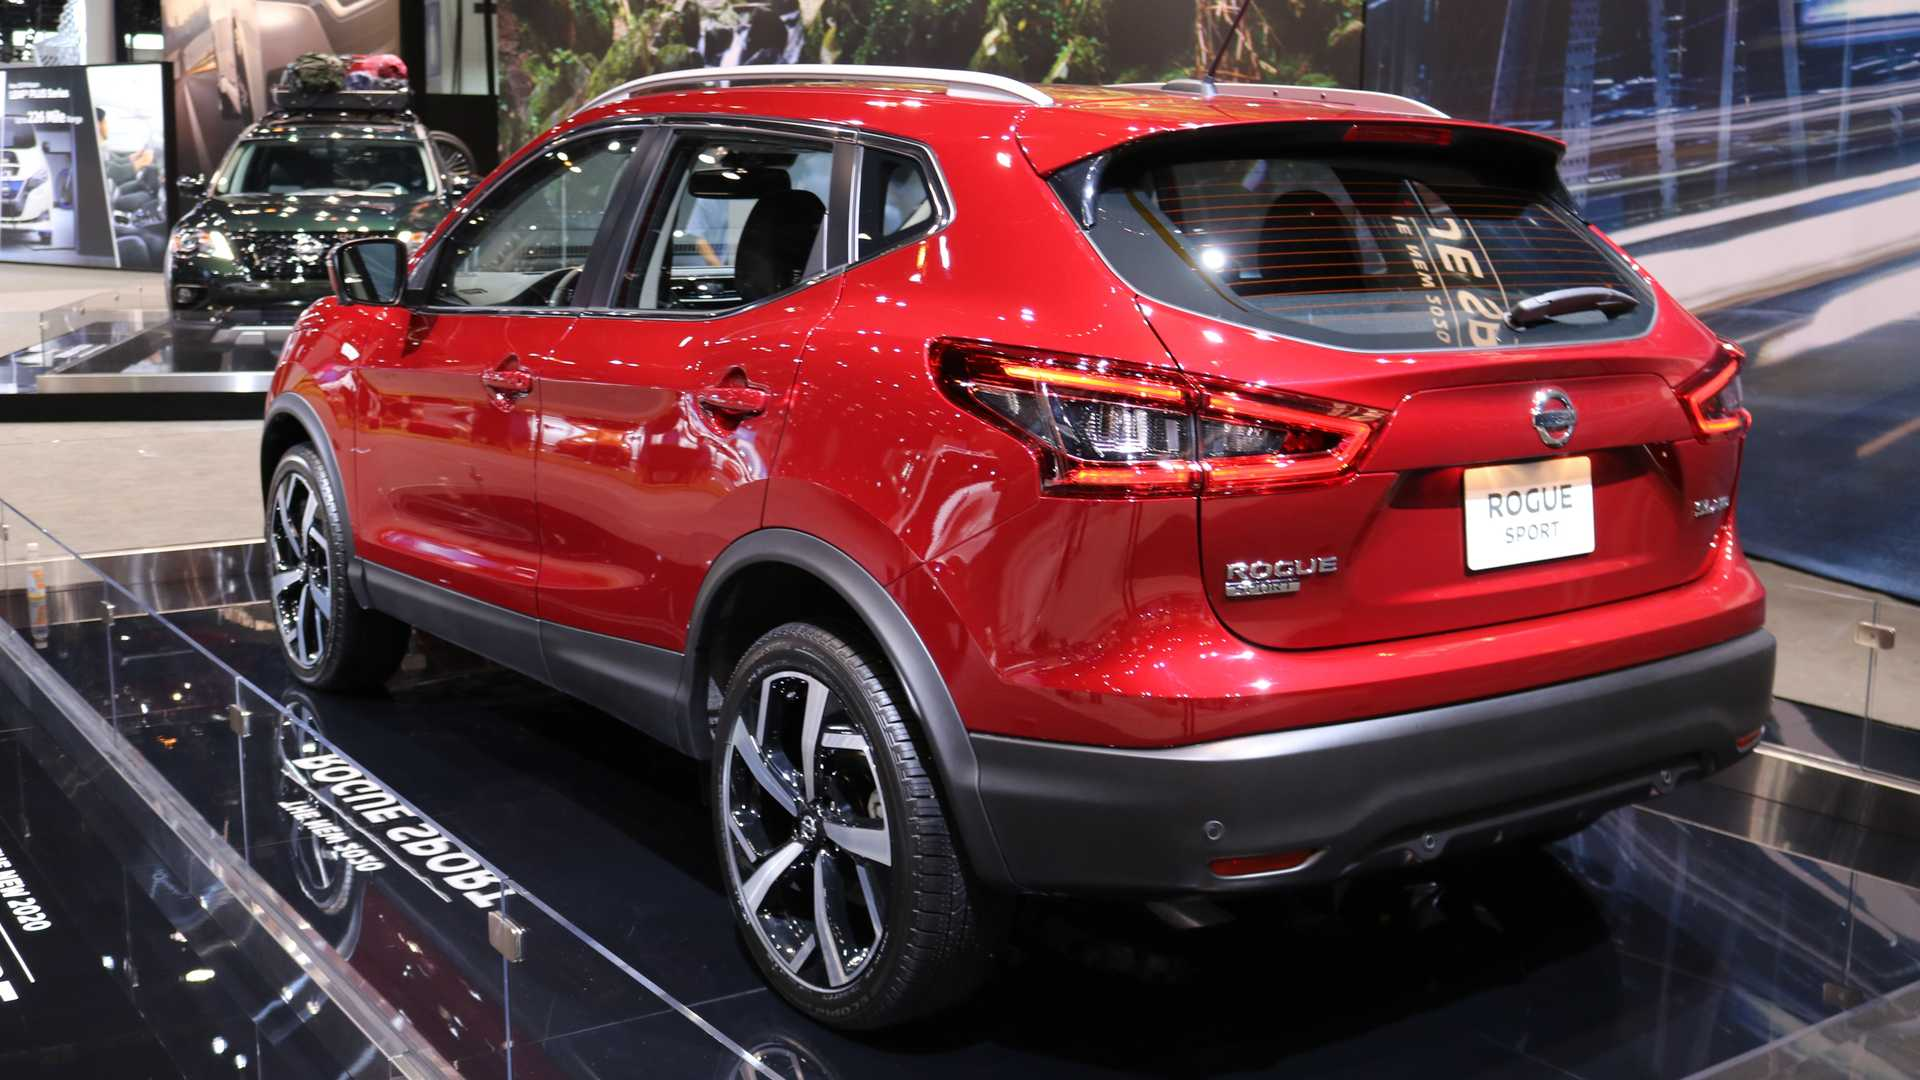 12 All New When Will The 2020 Nissan Rogue Be Available Rumors